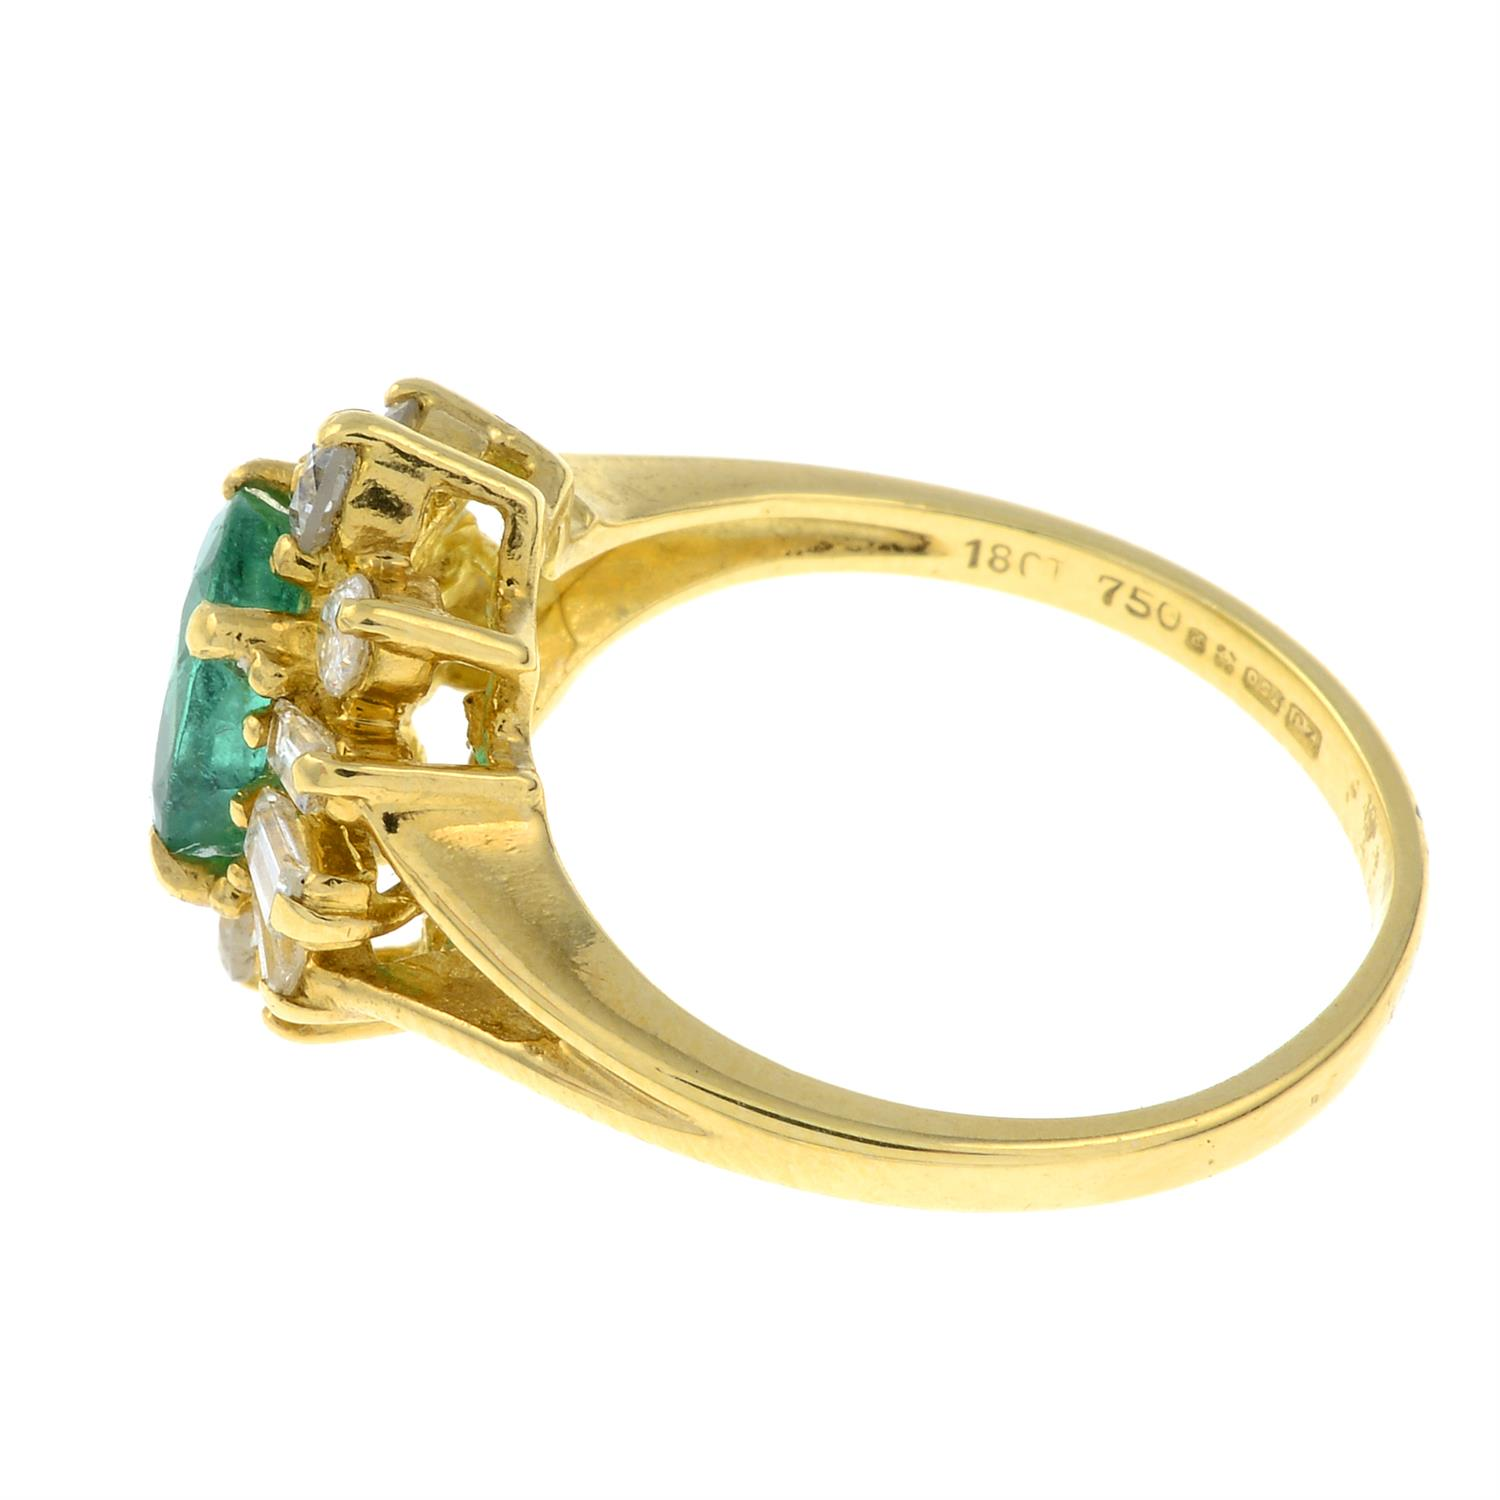 An 18ct gold emerald and vari-cut diamond cluster ring. - Image 2 of 3